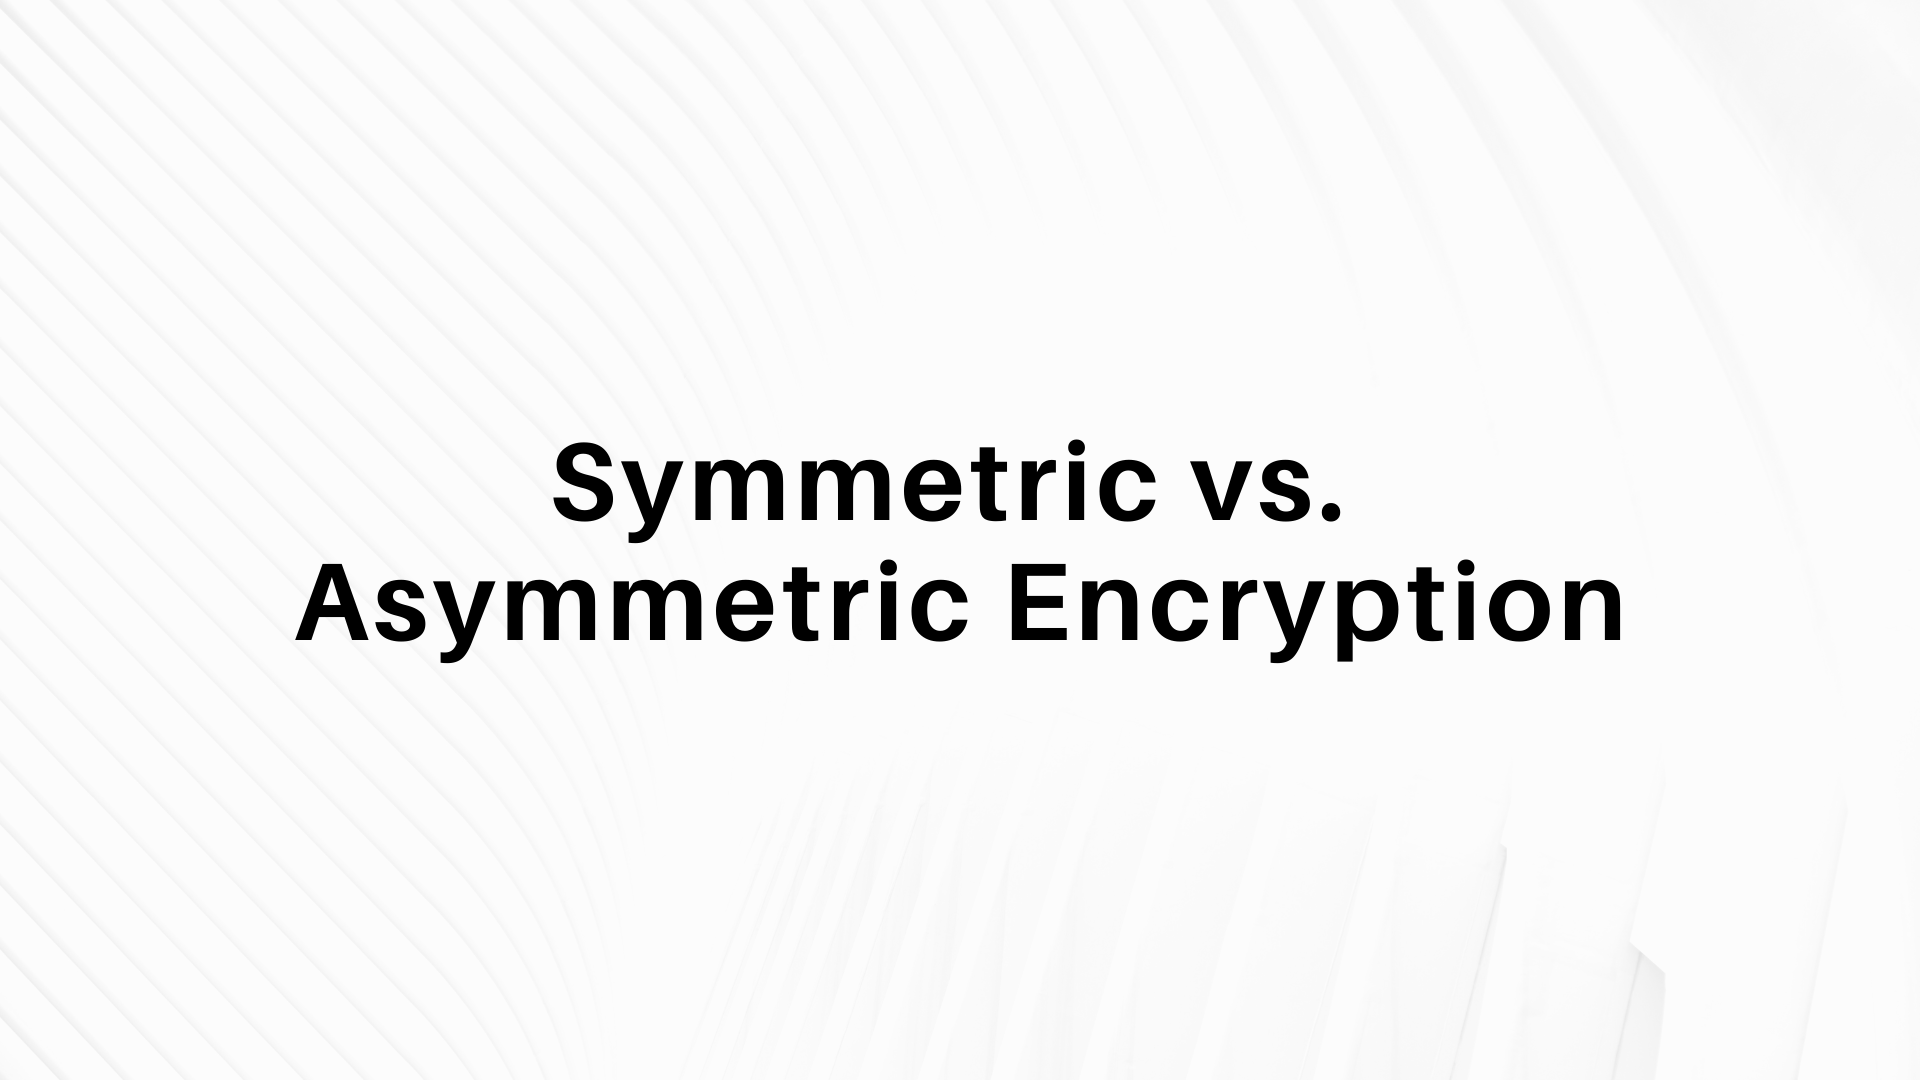 Symmetric vs. Asymmetric Encryption: What's the Difference?